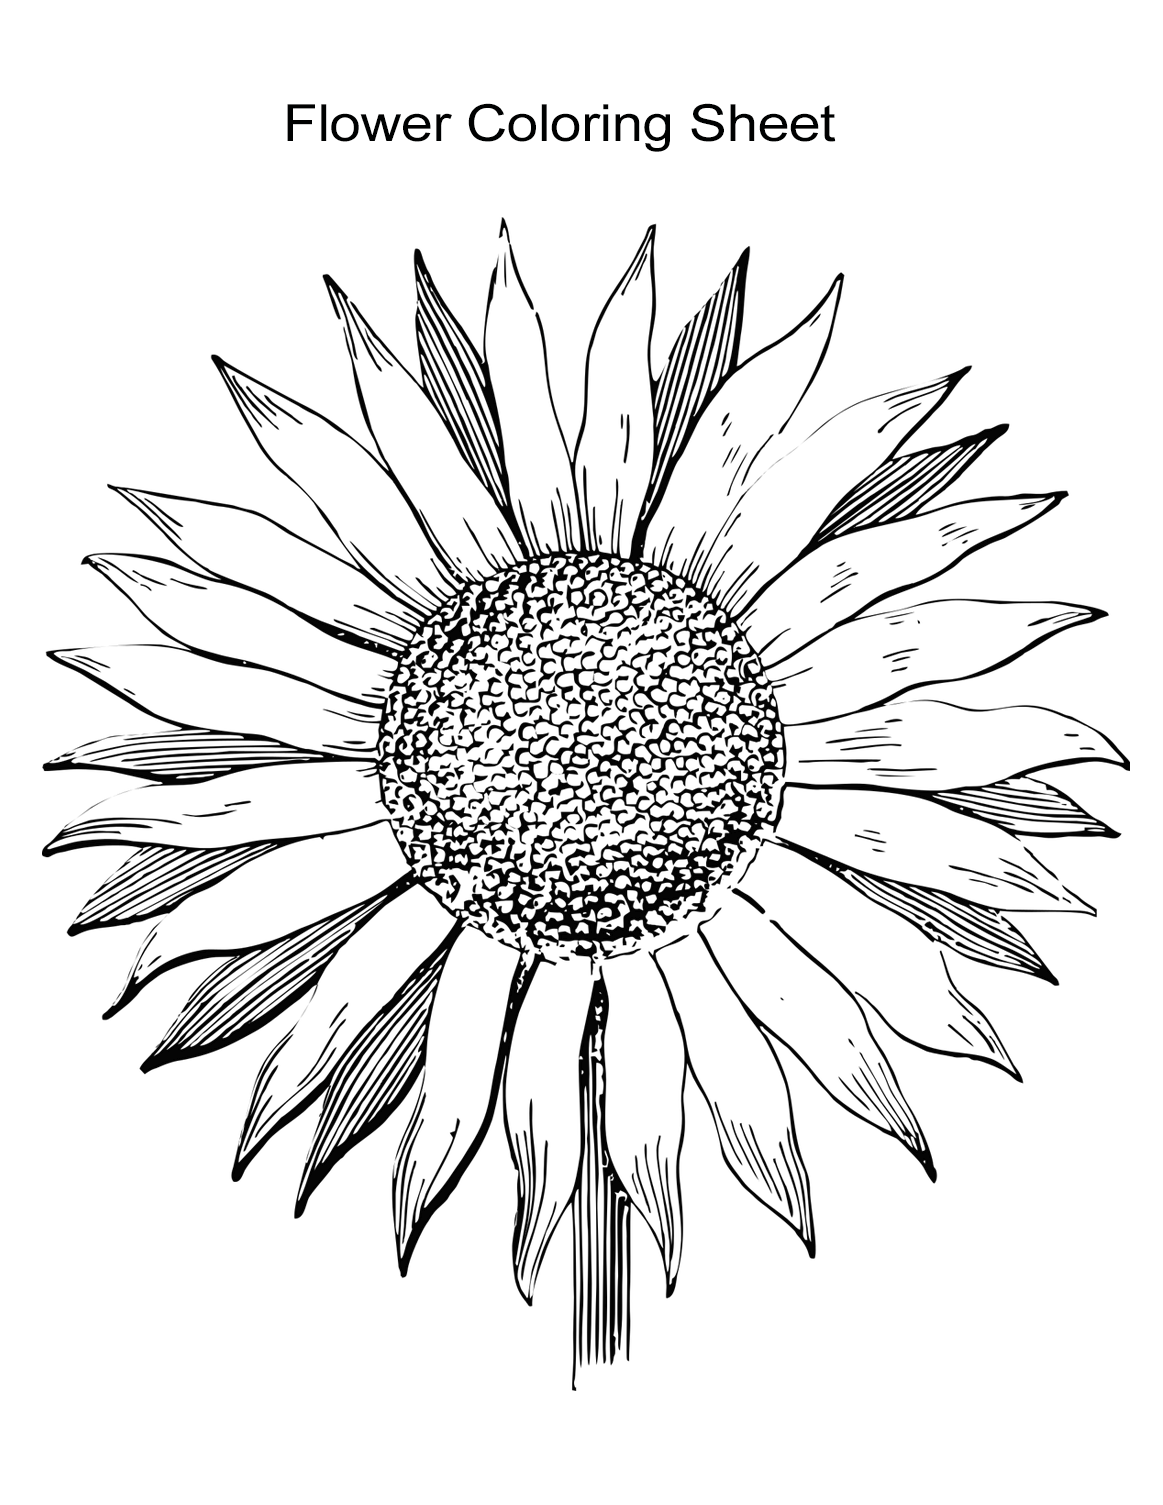 coloring flowers for adults free printable floral coloring page ausdruckbare for adults flowers coloring